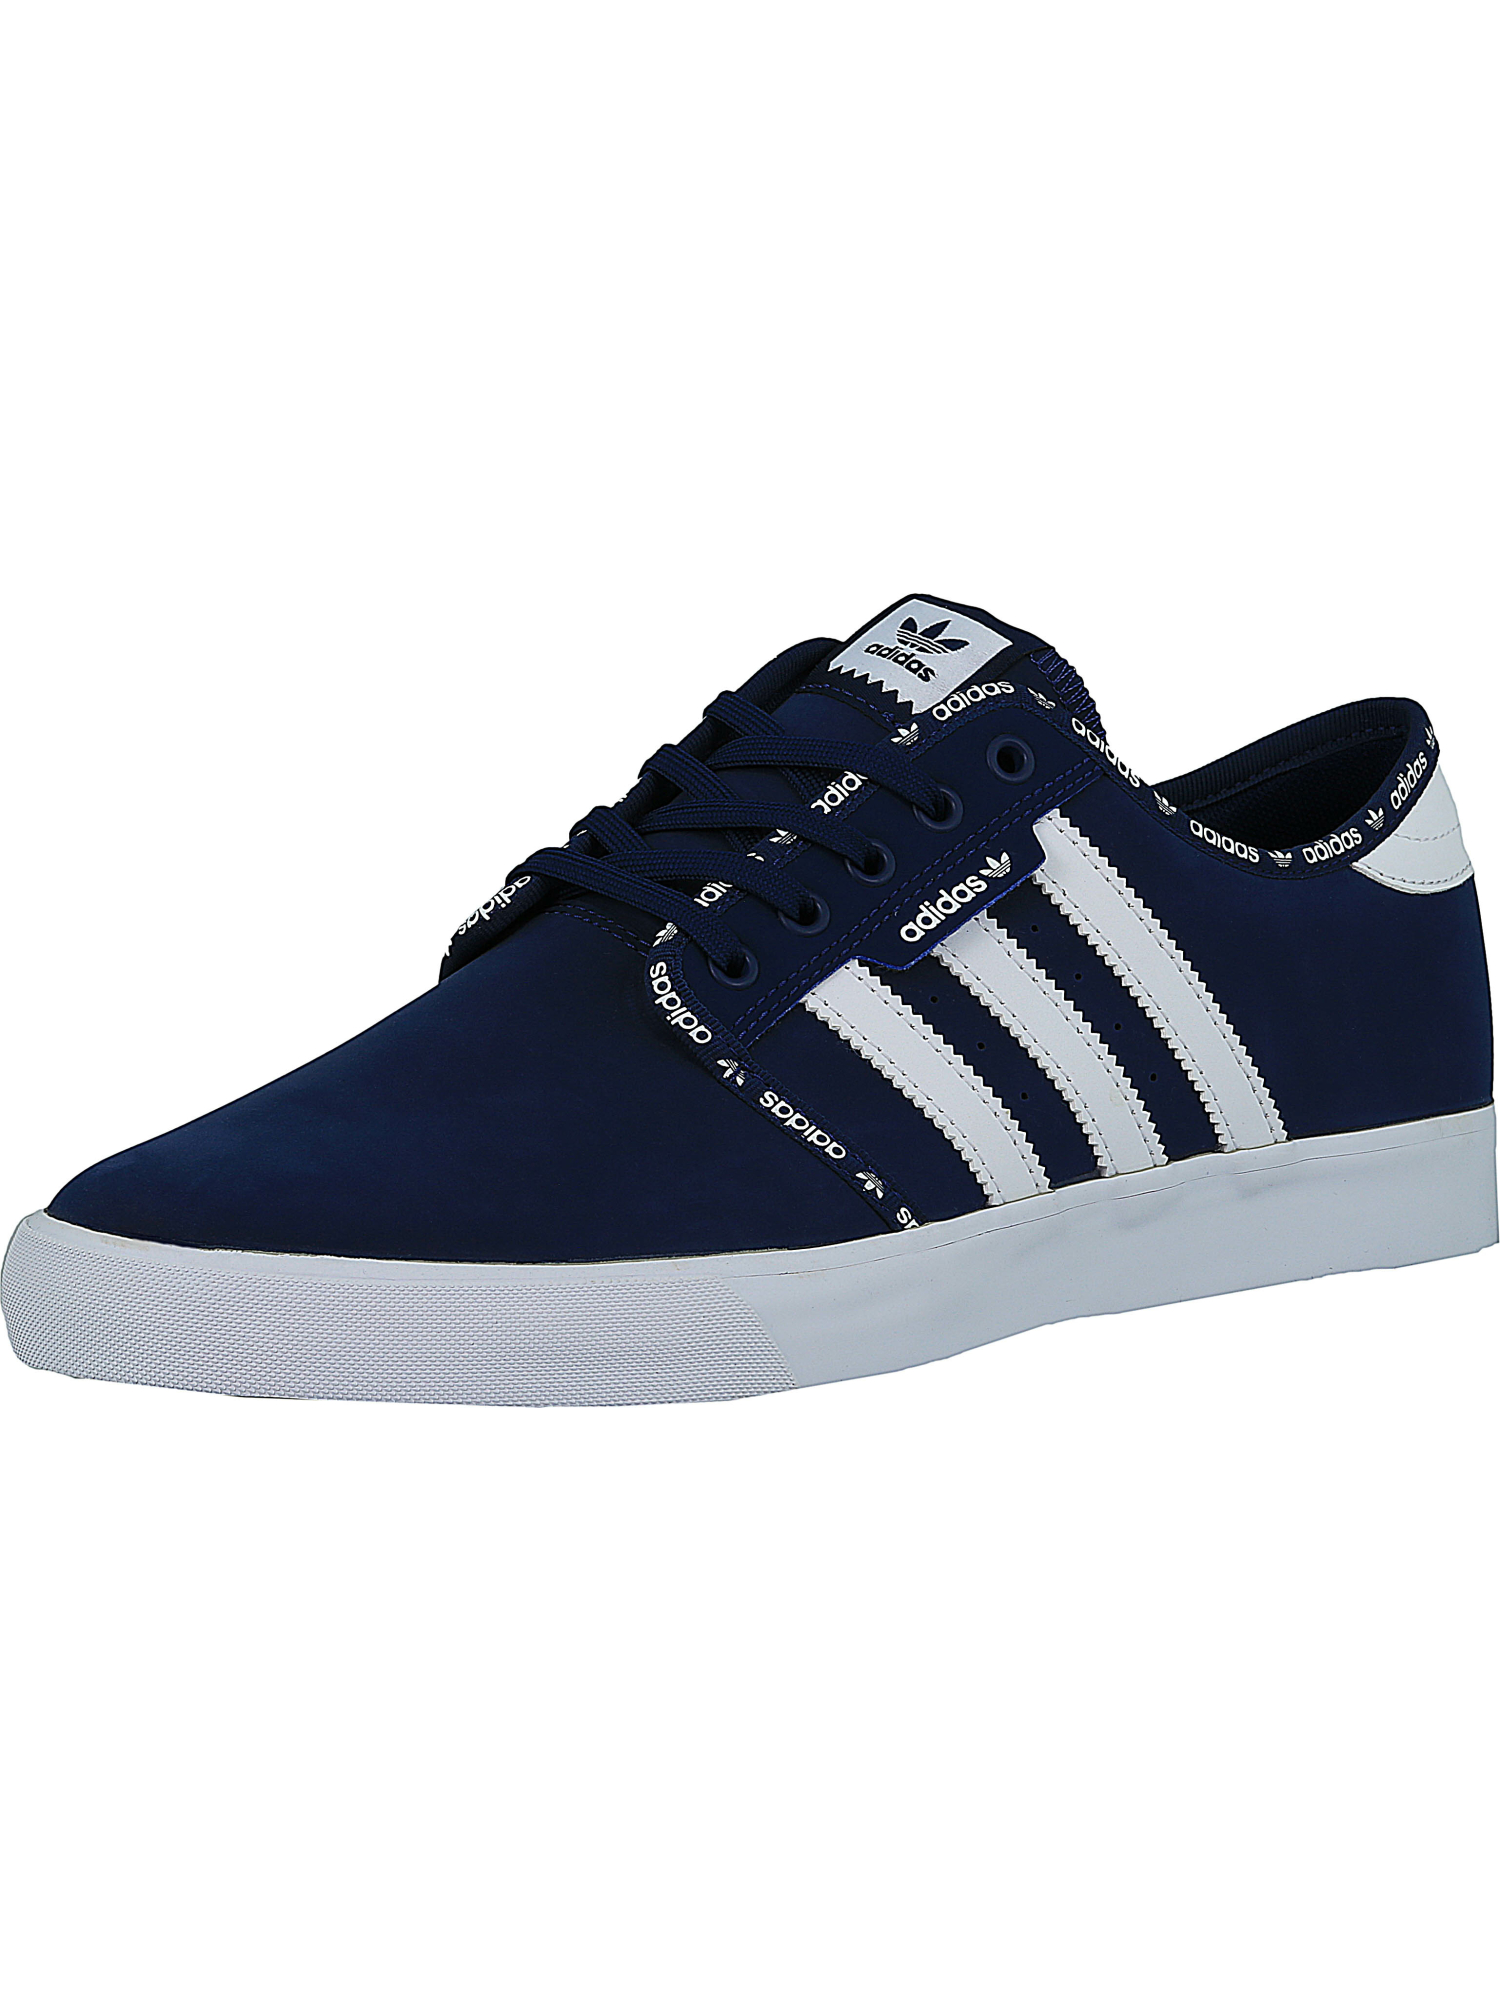 Adidas Men's Seeley Ankle-High Skateboarding Shoe